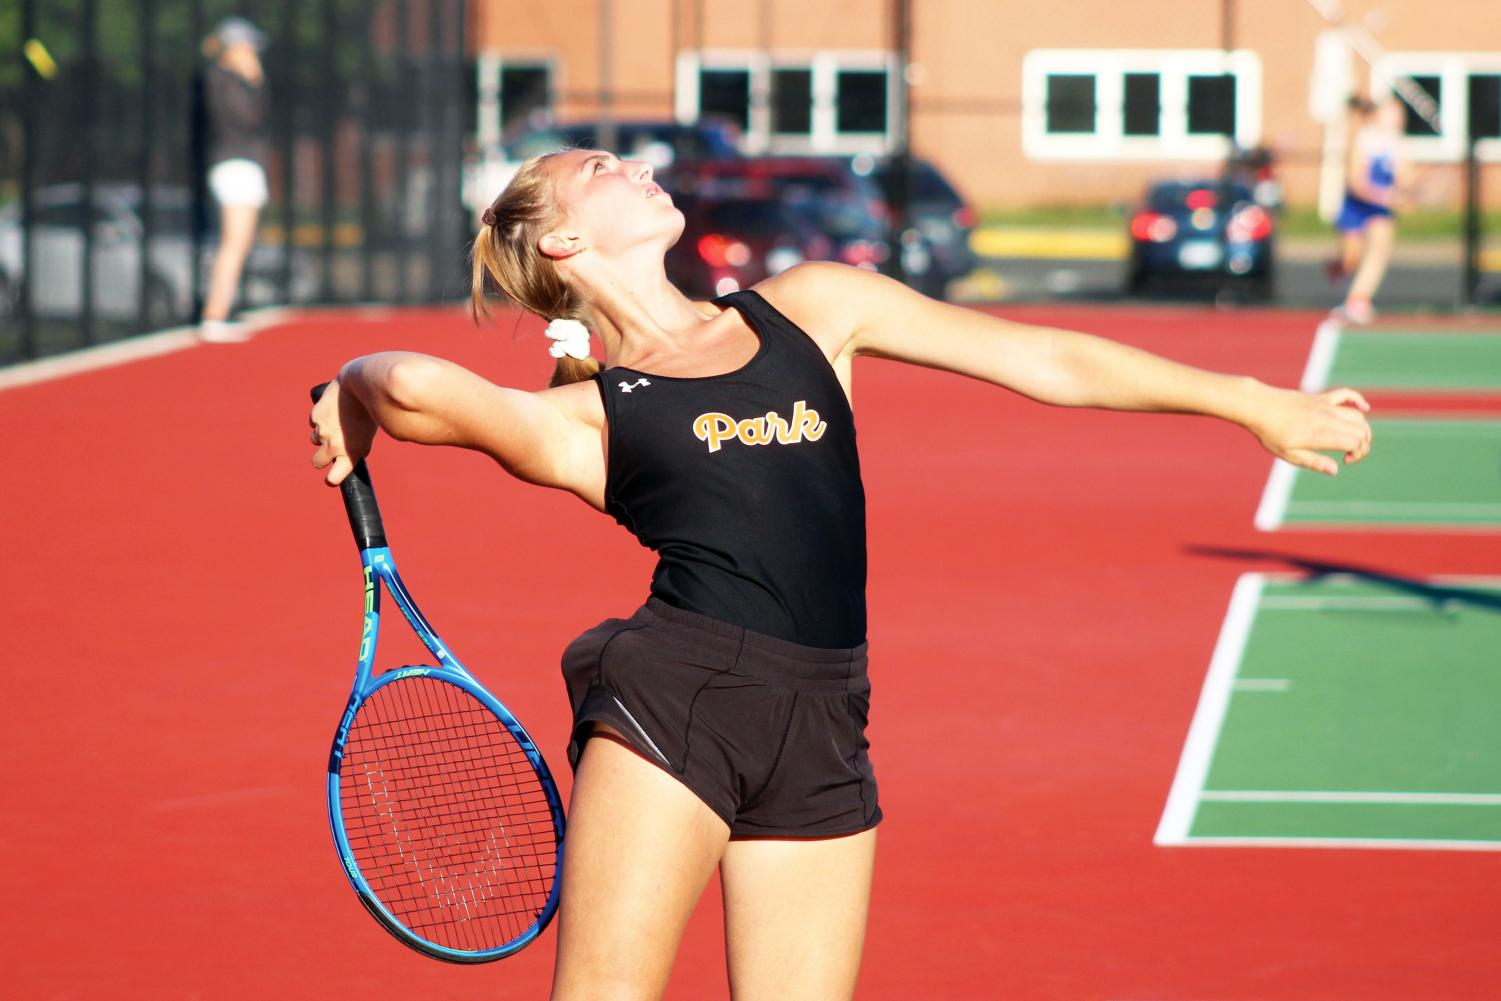 Sophomore Ava Jacobson prepares to serve the ball at her match against Holy Angels Sept. 23. Park's tennis courts were renovated over the summer of 2019.